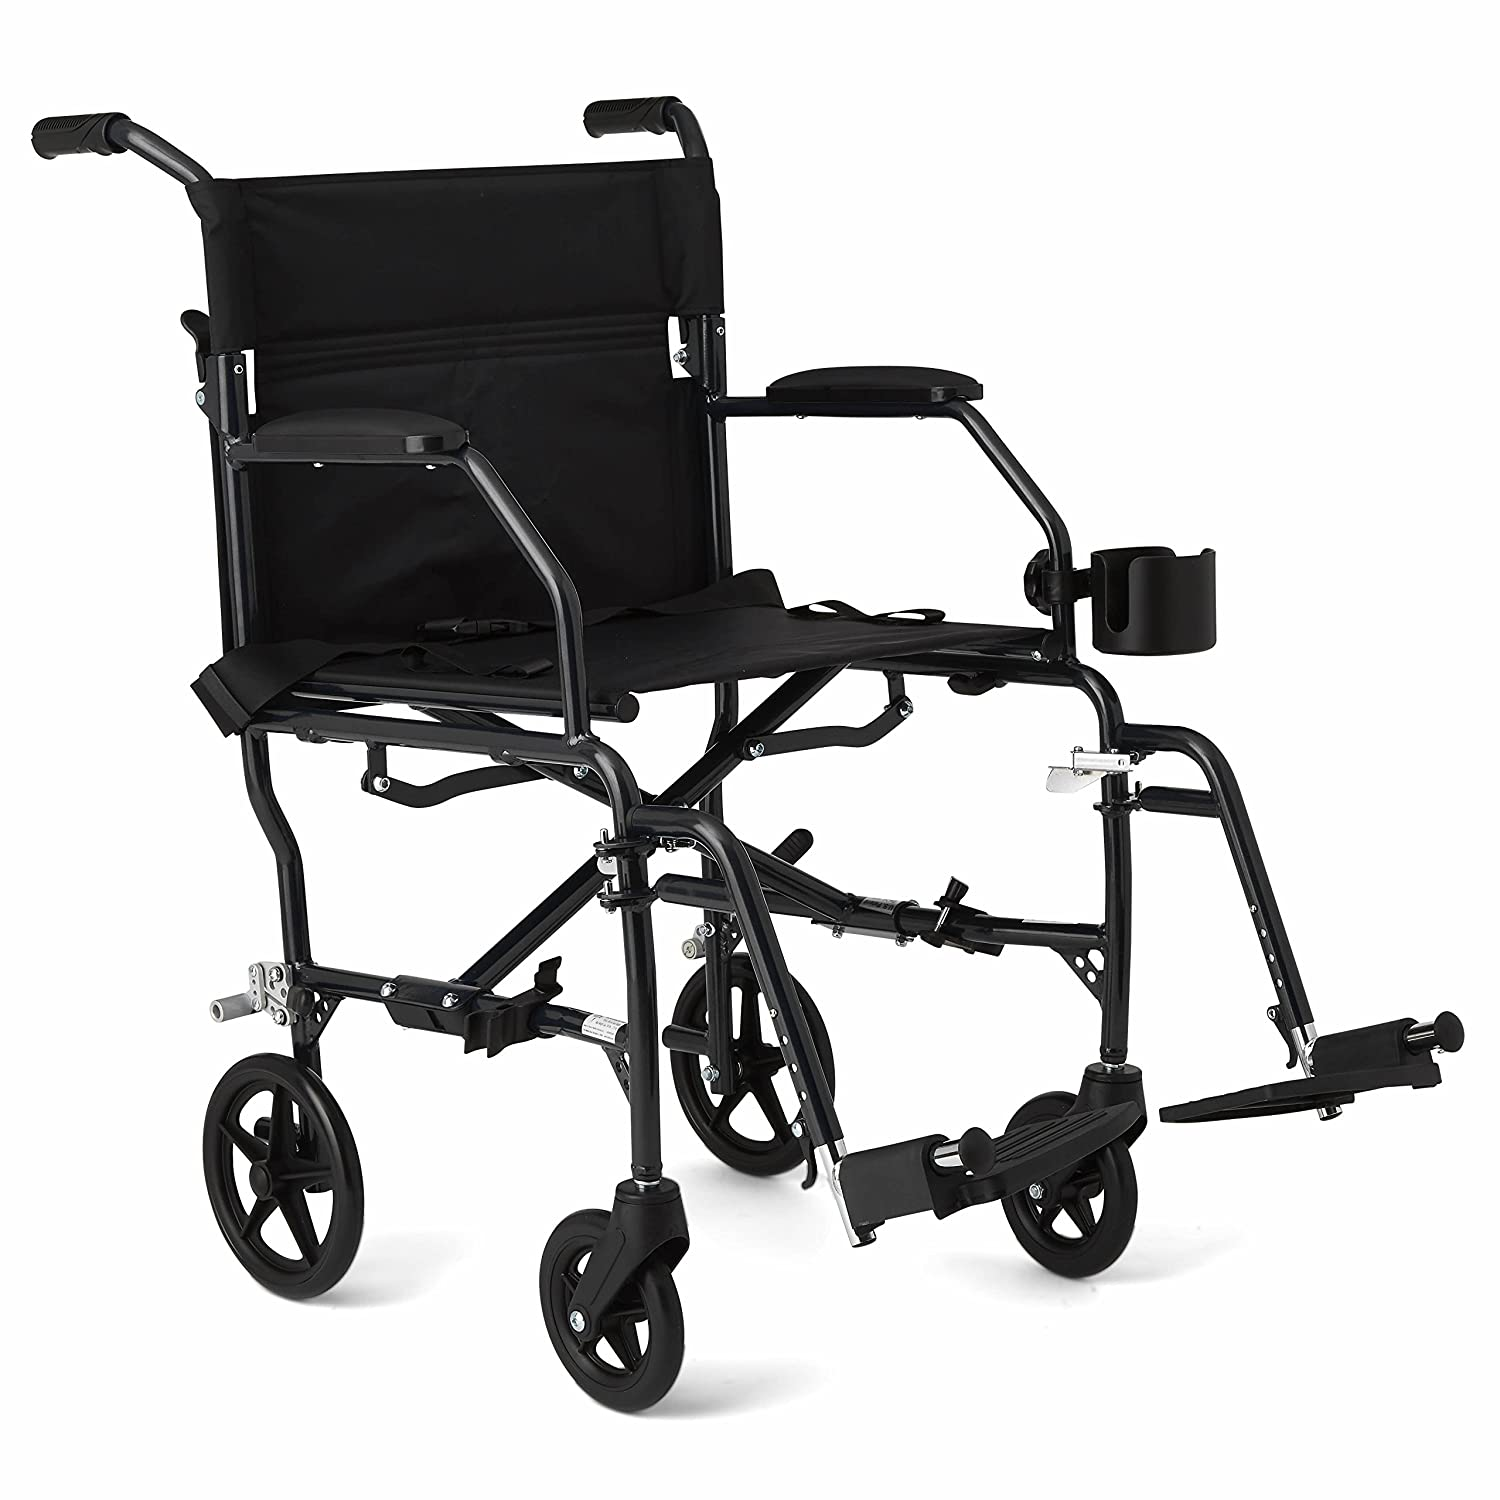 """Medline Ultralight Transport Wheelchair with 19"""" Wide Seat, Folding Transport Chair with Permanent Desk-Length Arms, Black Frame"""